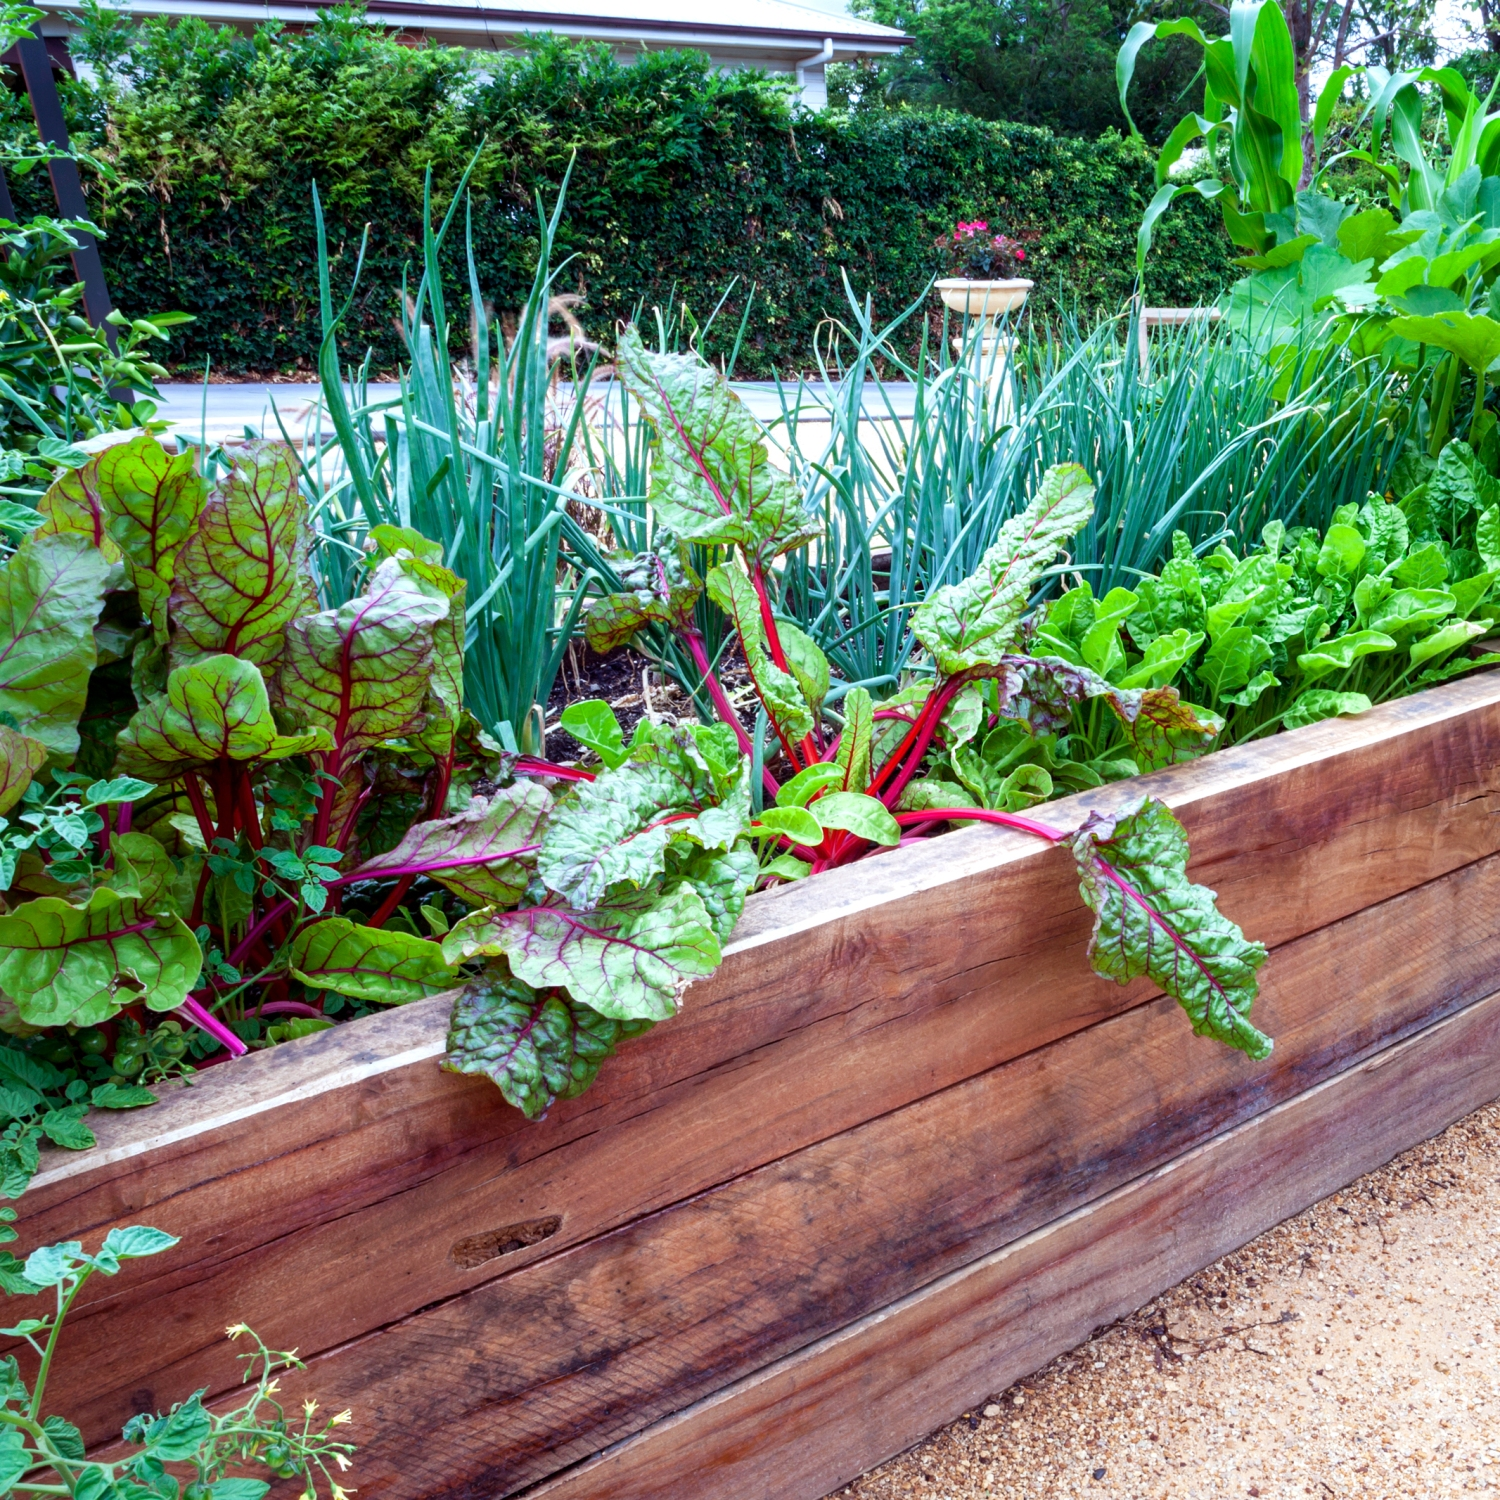 Raised planting bed lush with greenery